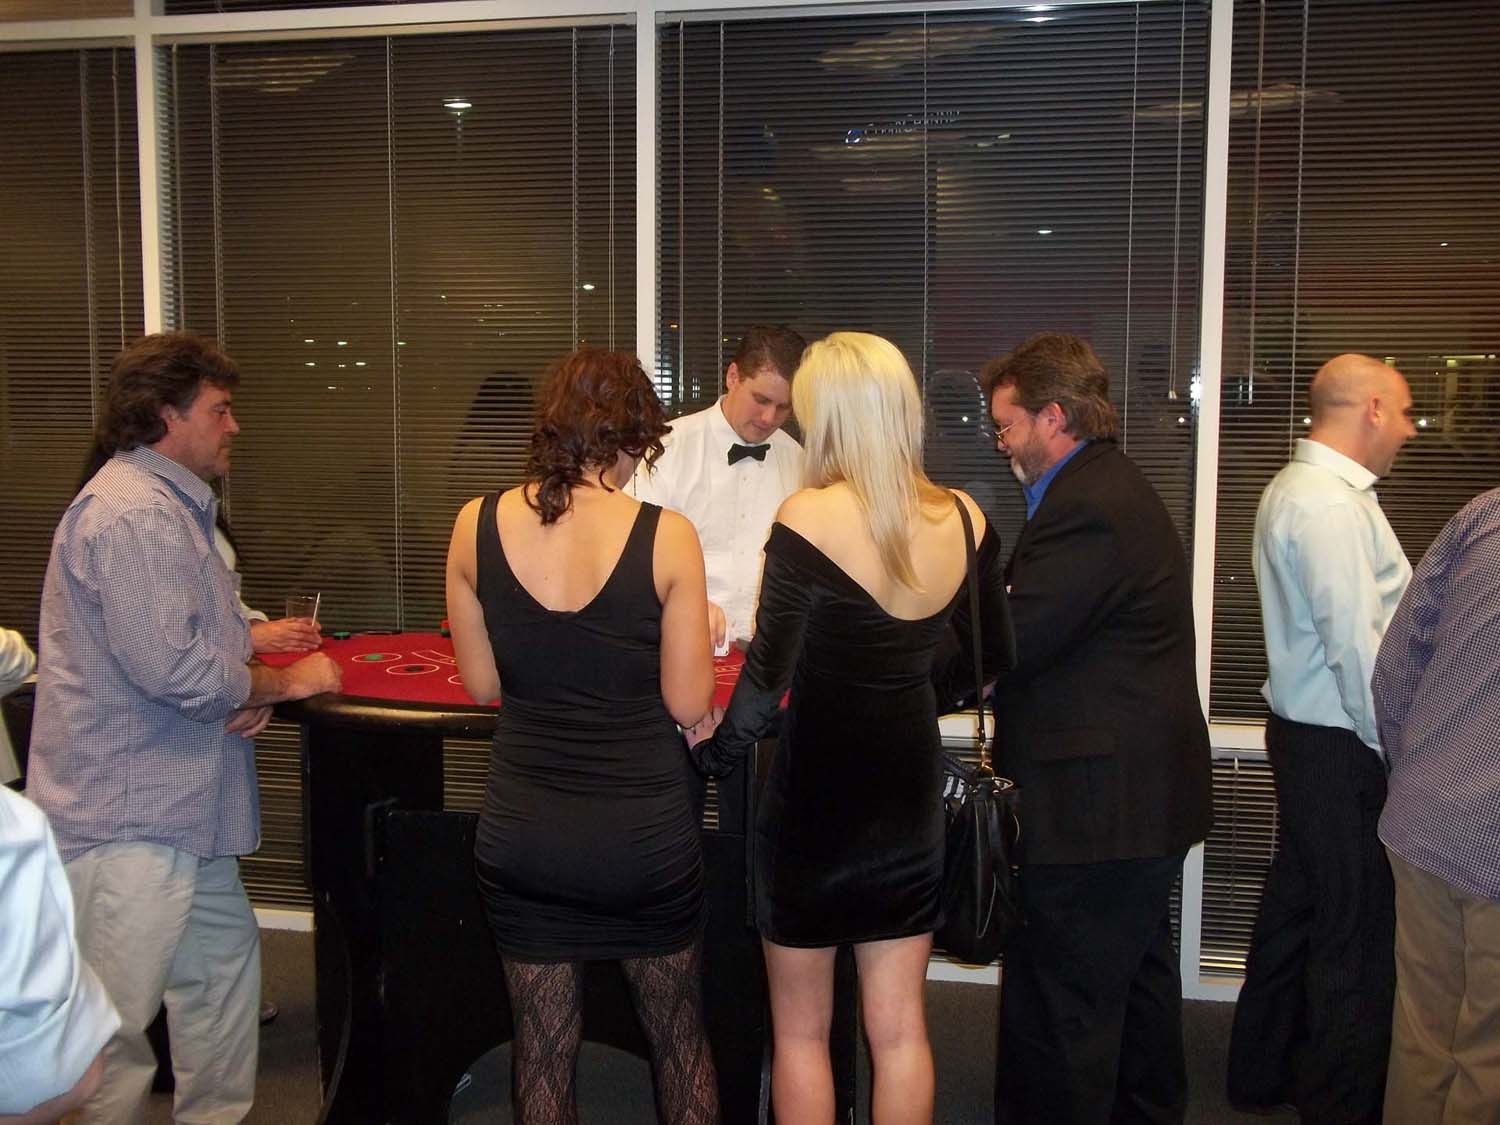 Fun Company Christmas Party Ideas Part - 33: Looking For A Great Holiday Party Idea Or Christmas Party Theme? Save On A  Casino Night For Your Next Company Holiday Or Christmas Party